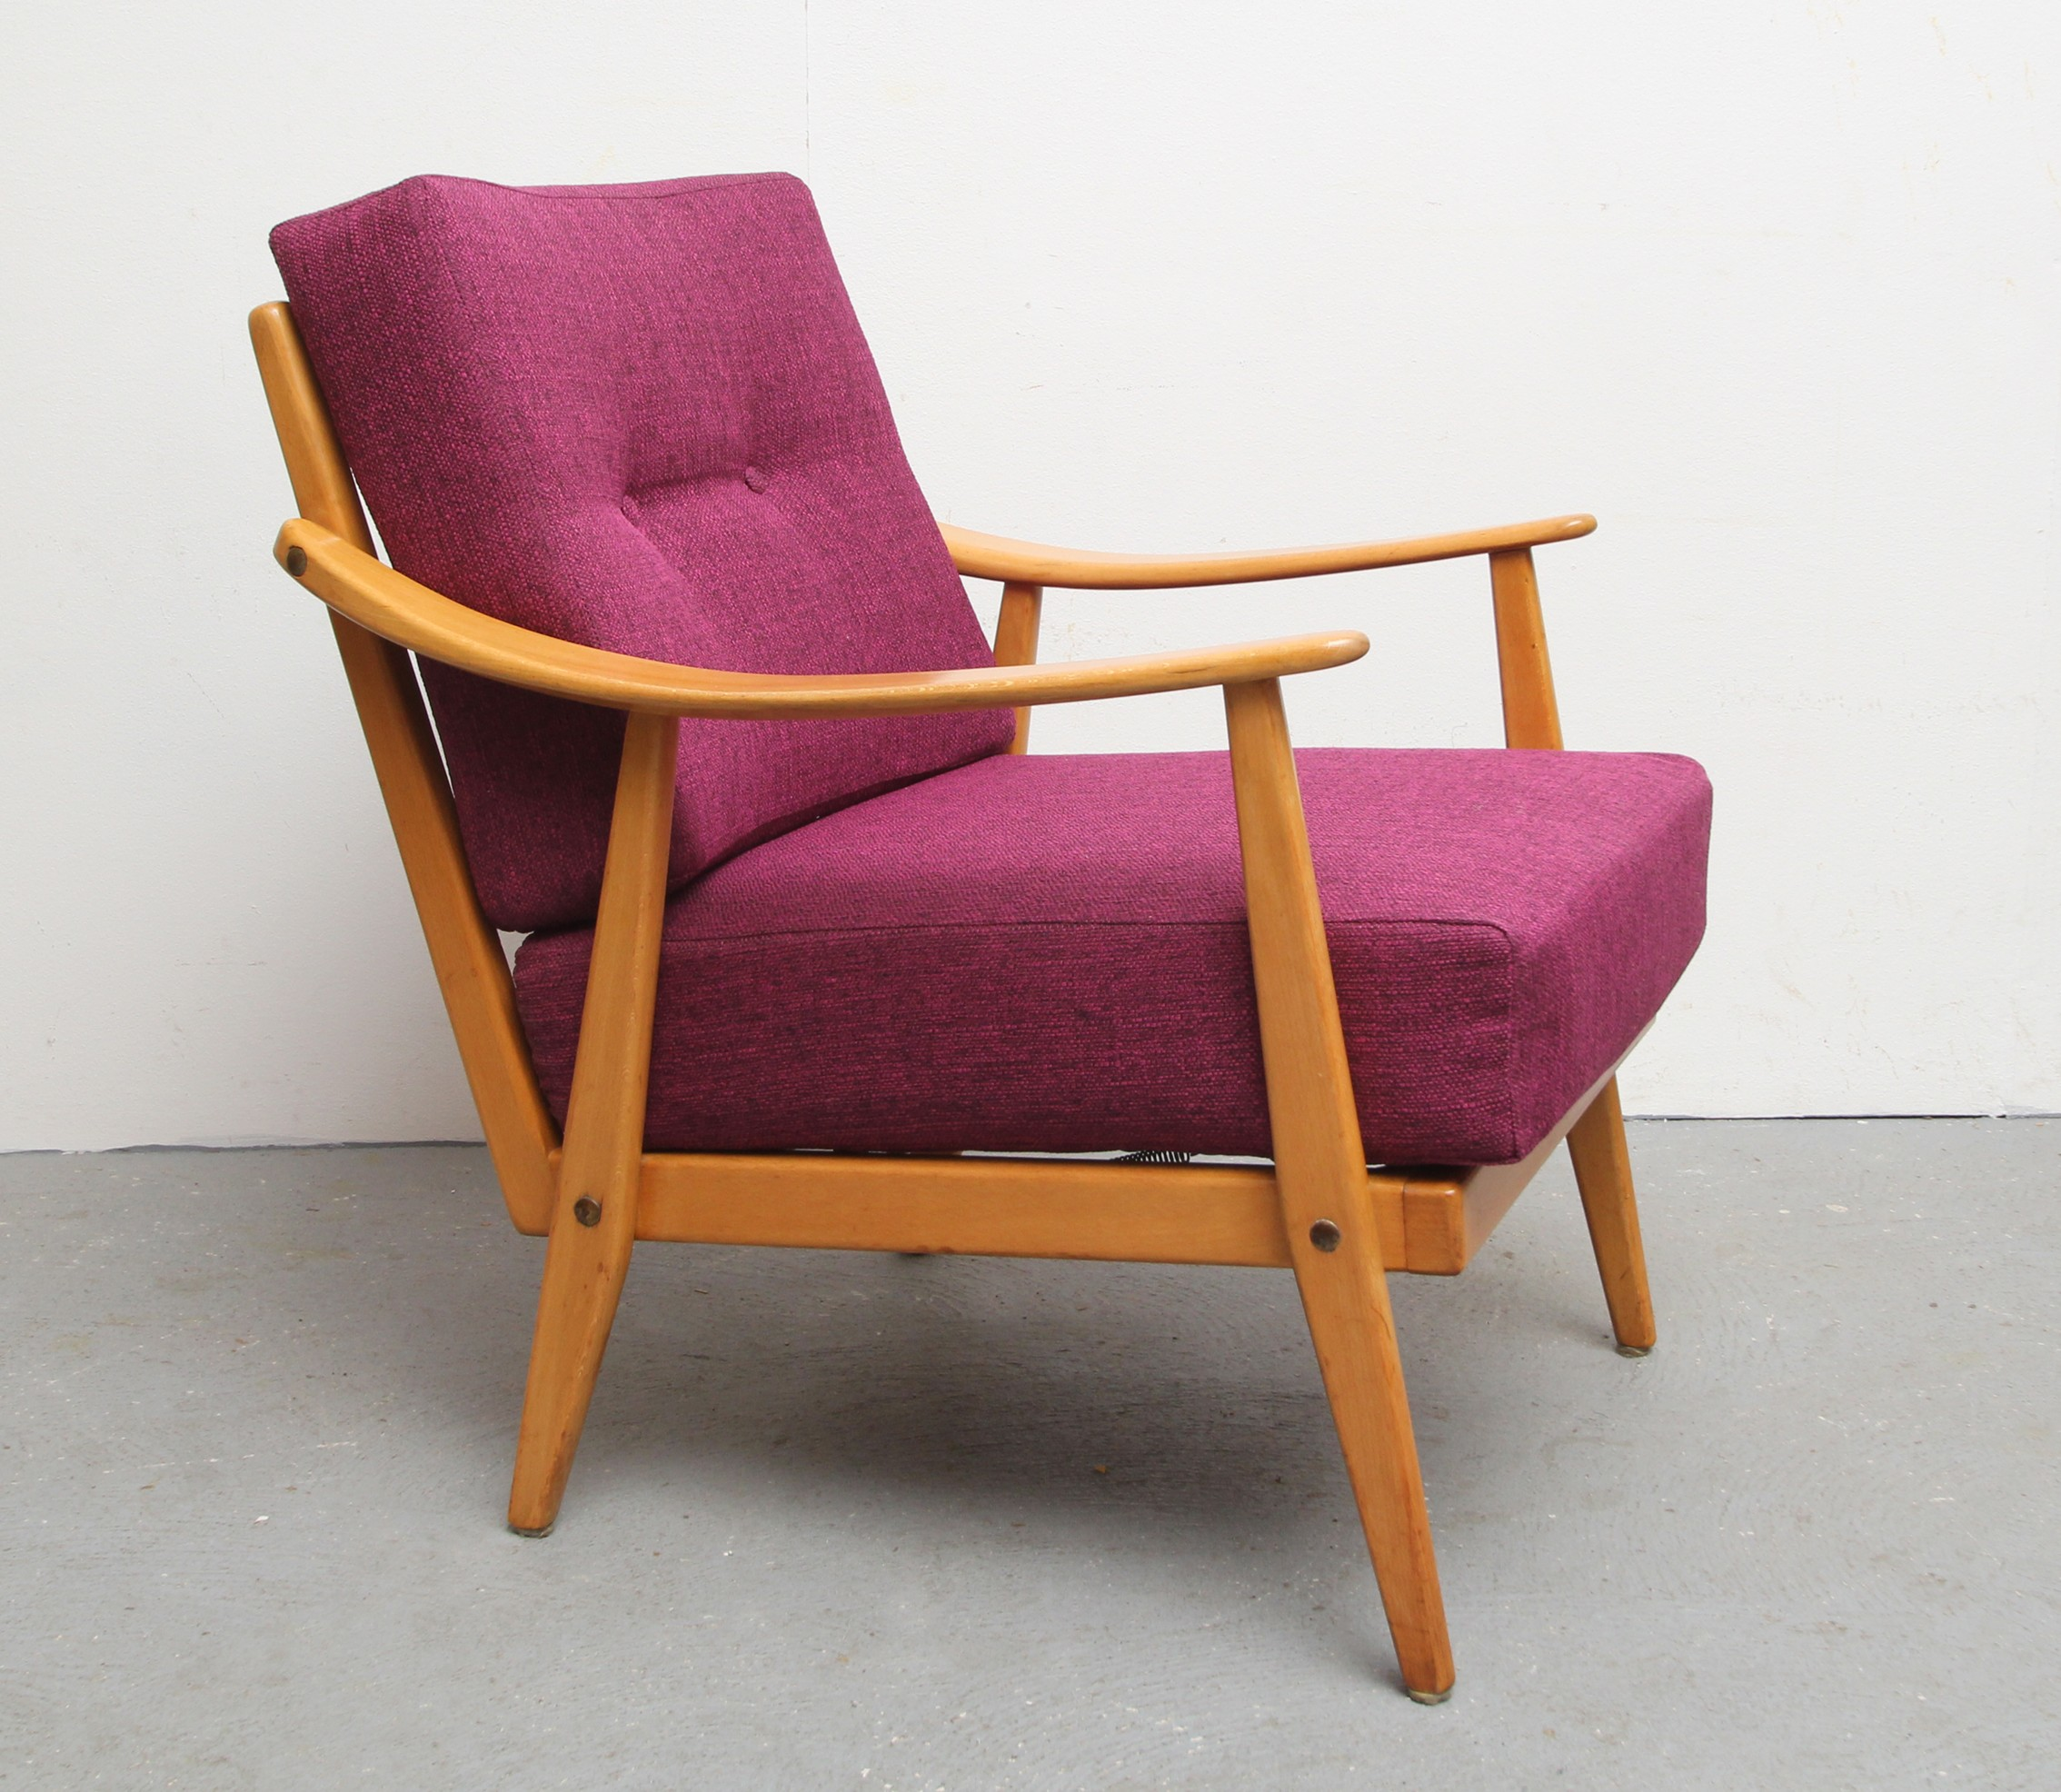 1950s Lounge Armchairs Re Upholstered In Multicolored: Mid Century Reupholstered Armchair In Solid Wood And